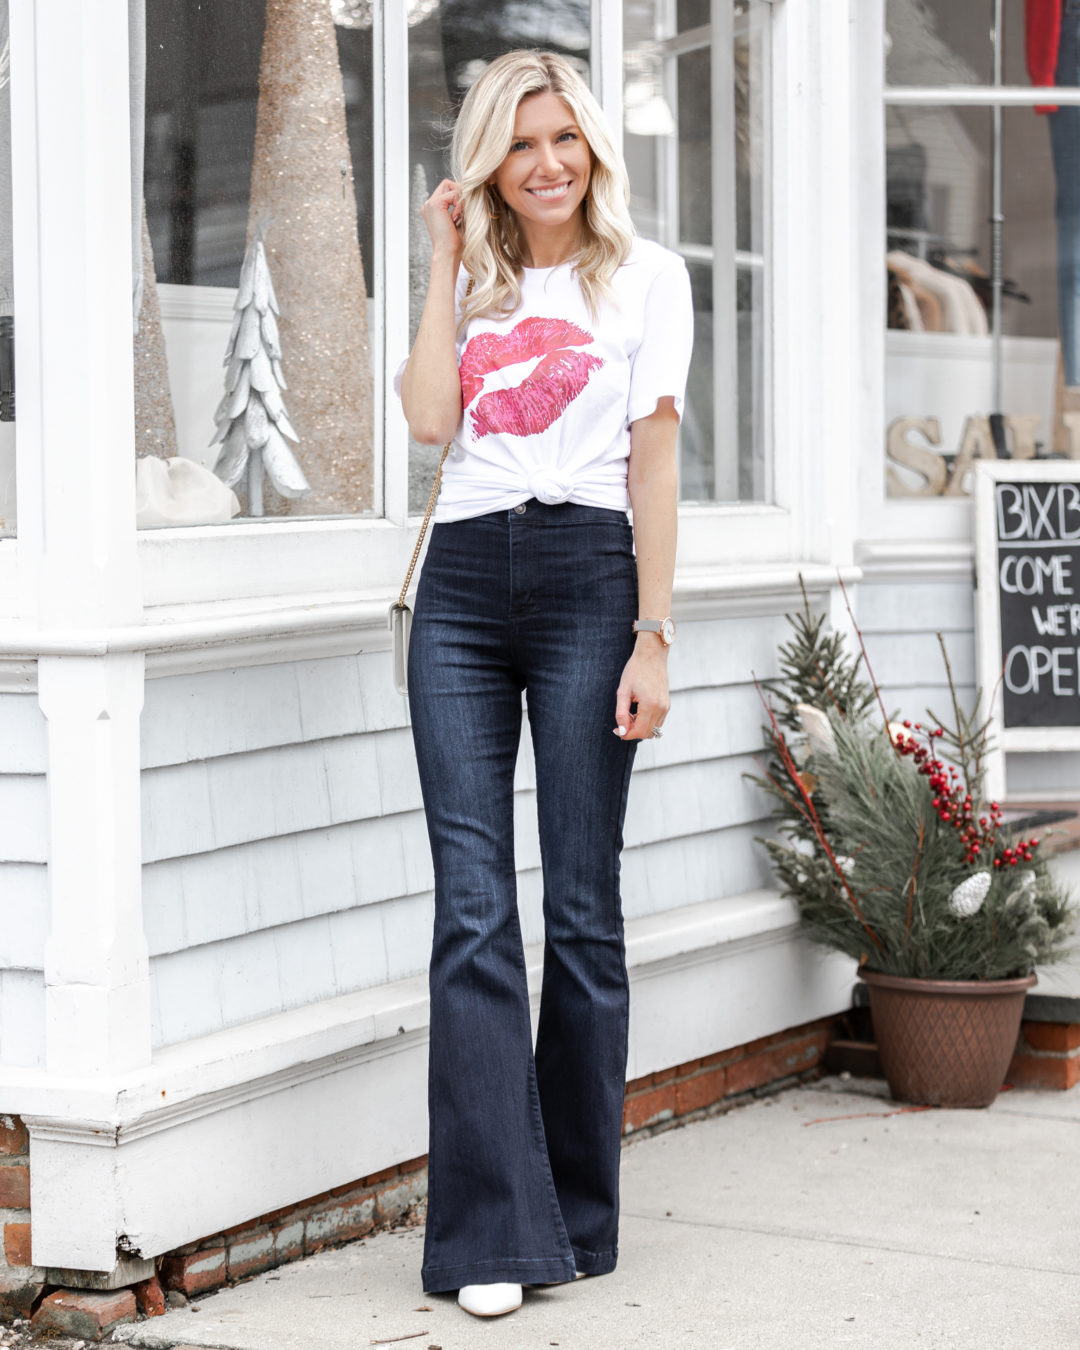 casual-valentines-day-vibes-from-shop-the-mint-the-glamorous-gal